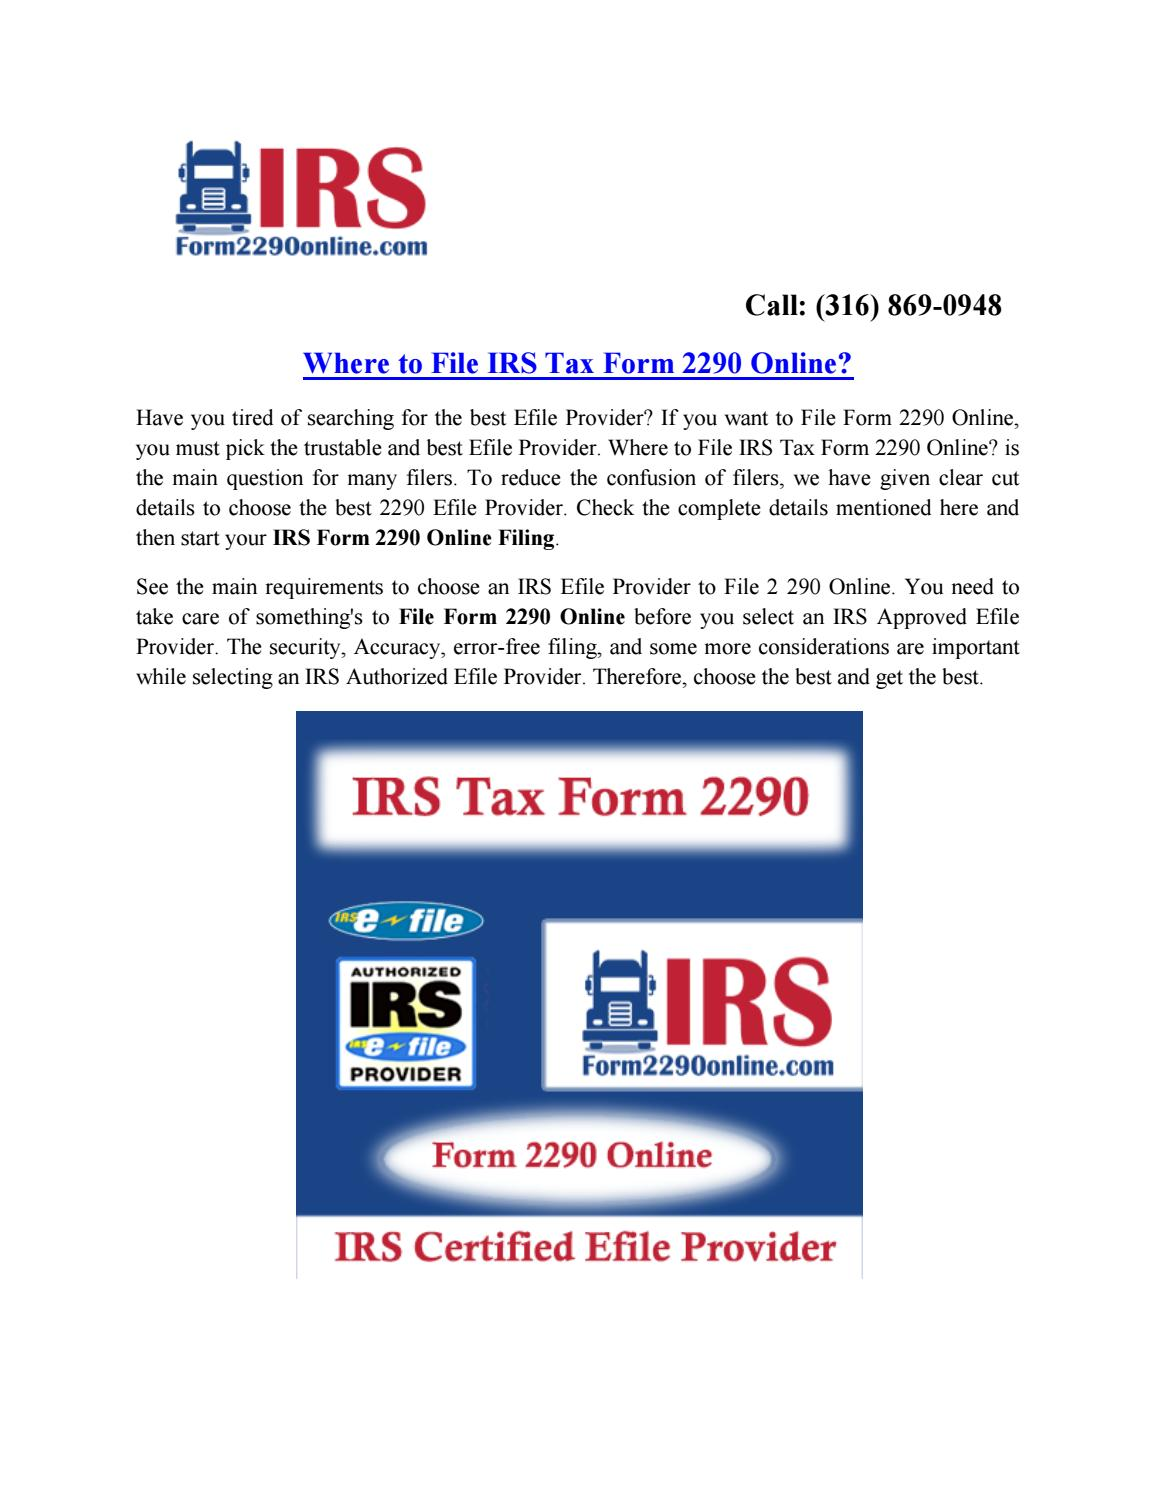 2290 form pay online  File IRS Tax Form 10 Online & Pay Heavy Use Tax at Form ...